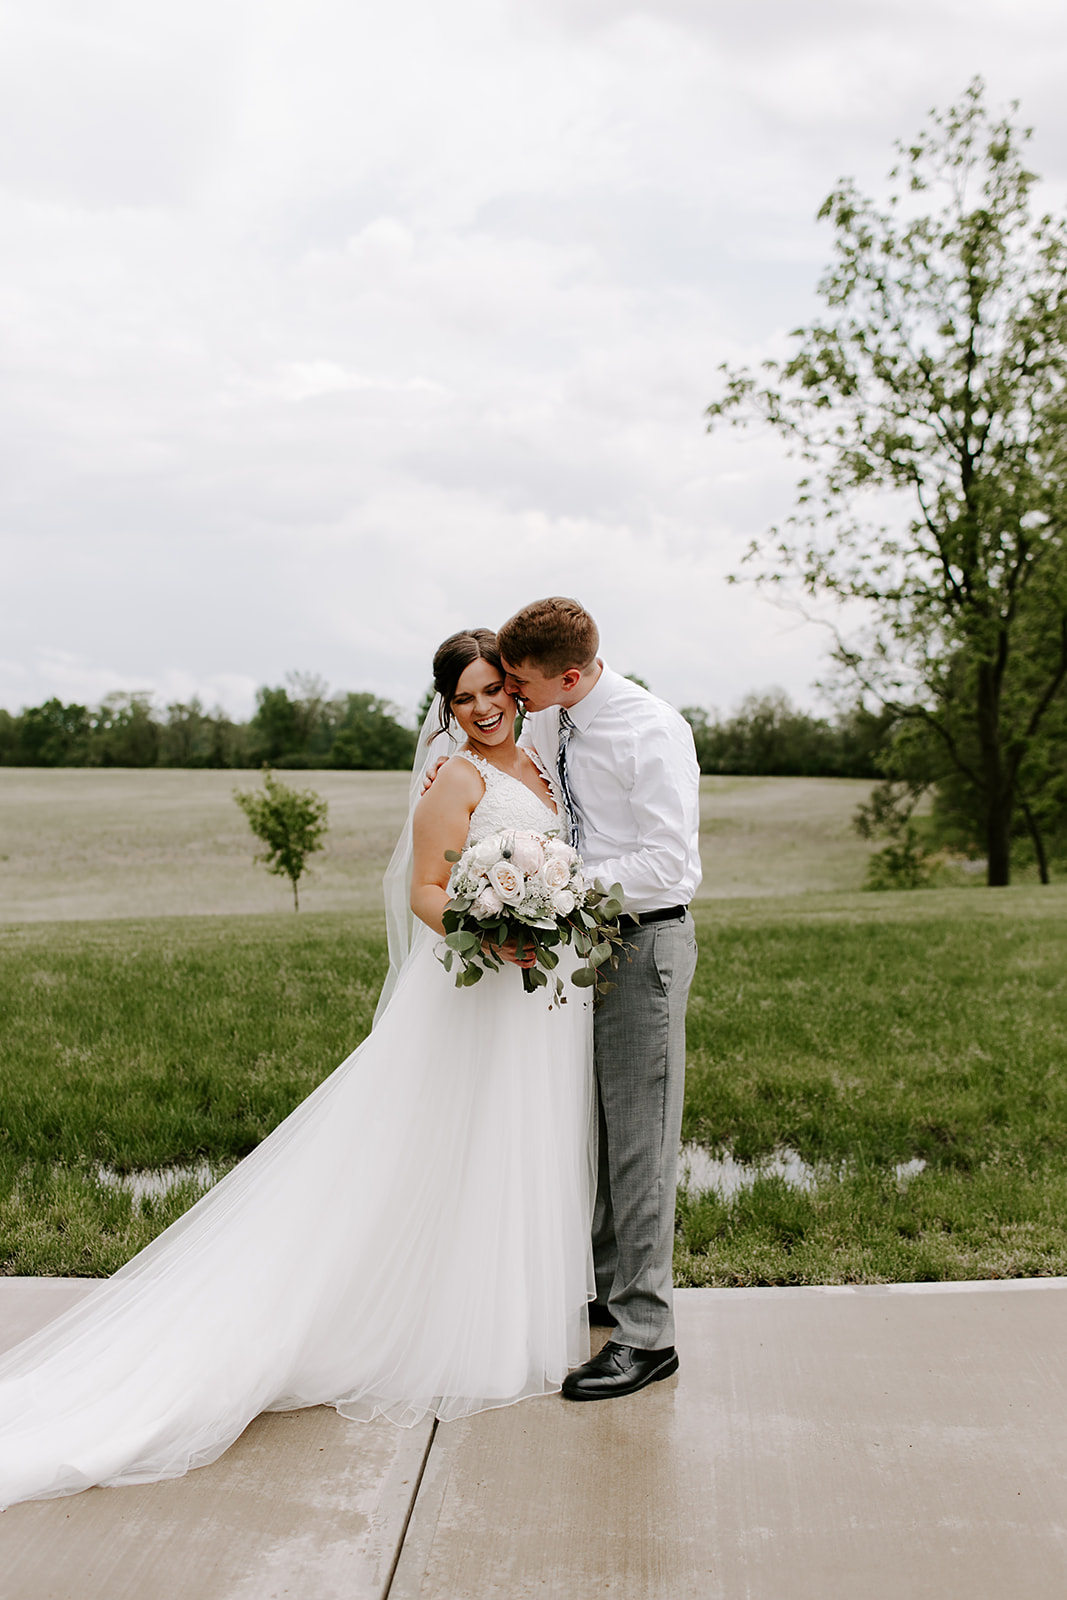 Kendra_and_Mattew_Indiana_Wedding_by_Emily_Wehner-268.jpg